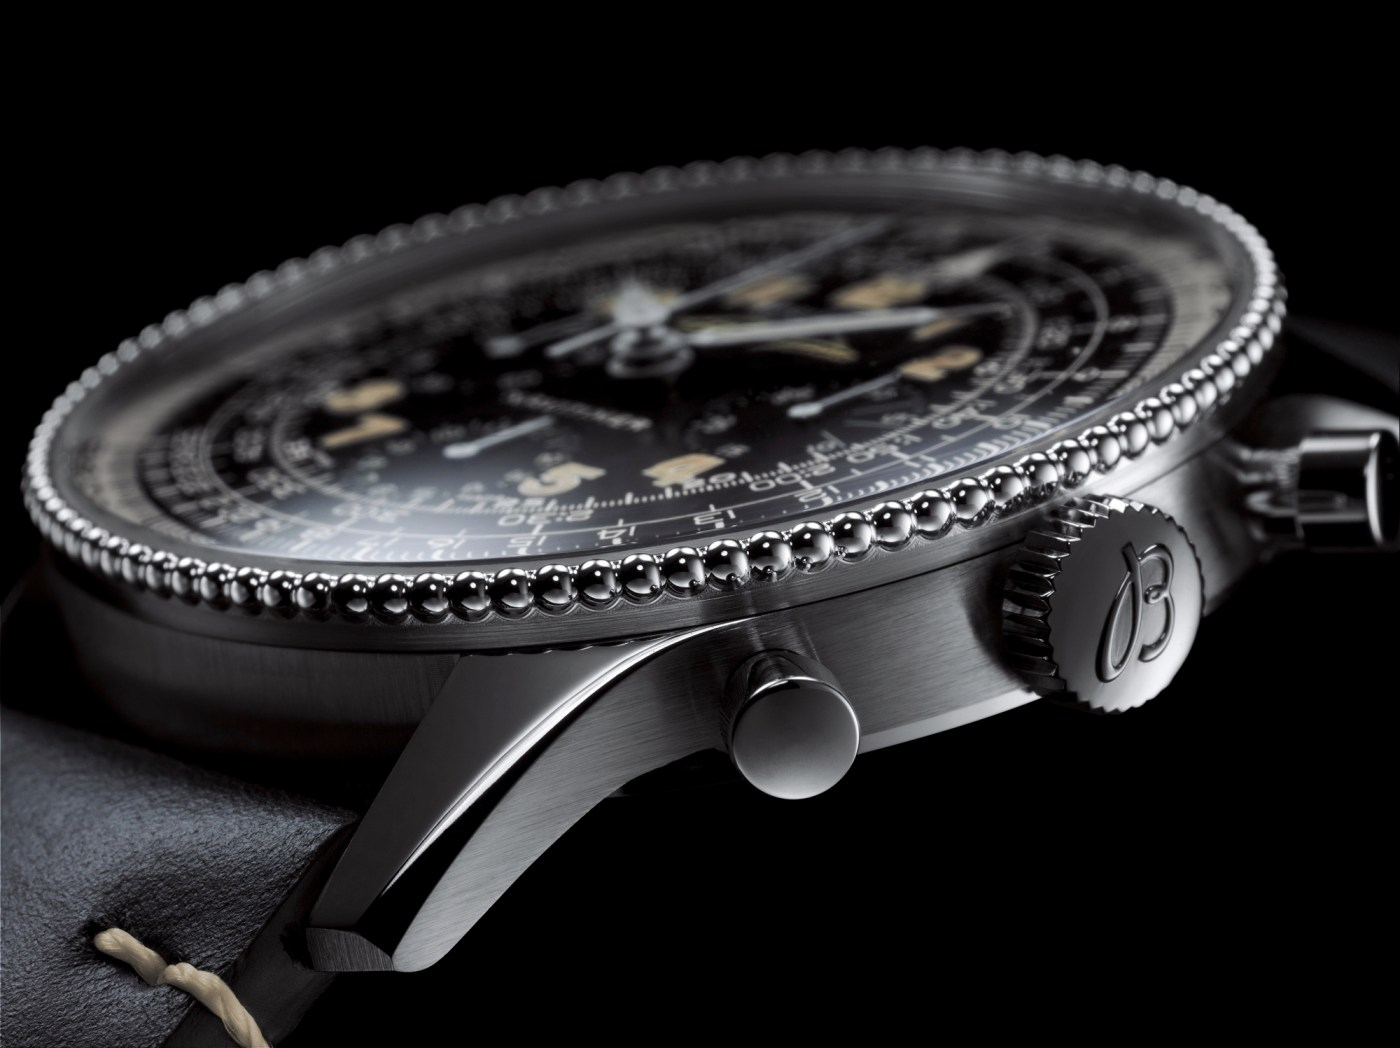 Navitimer Ref. 806 1959 Re-Edition crown shot